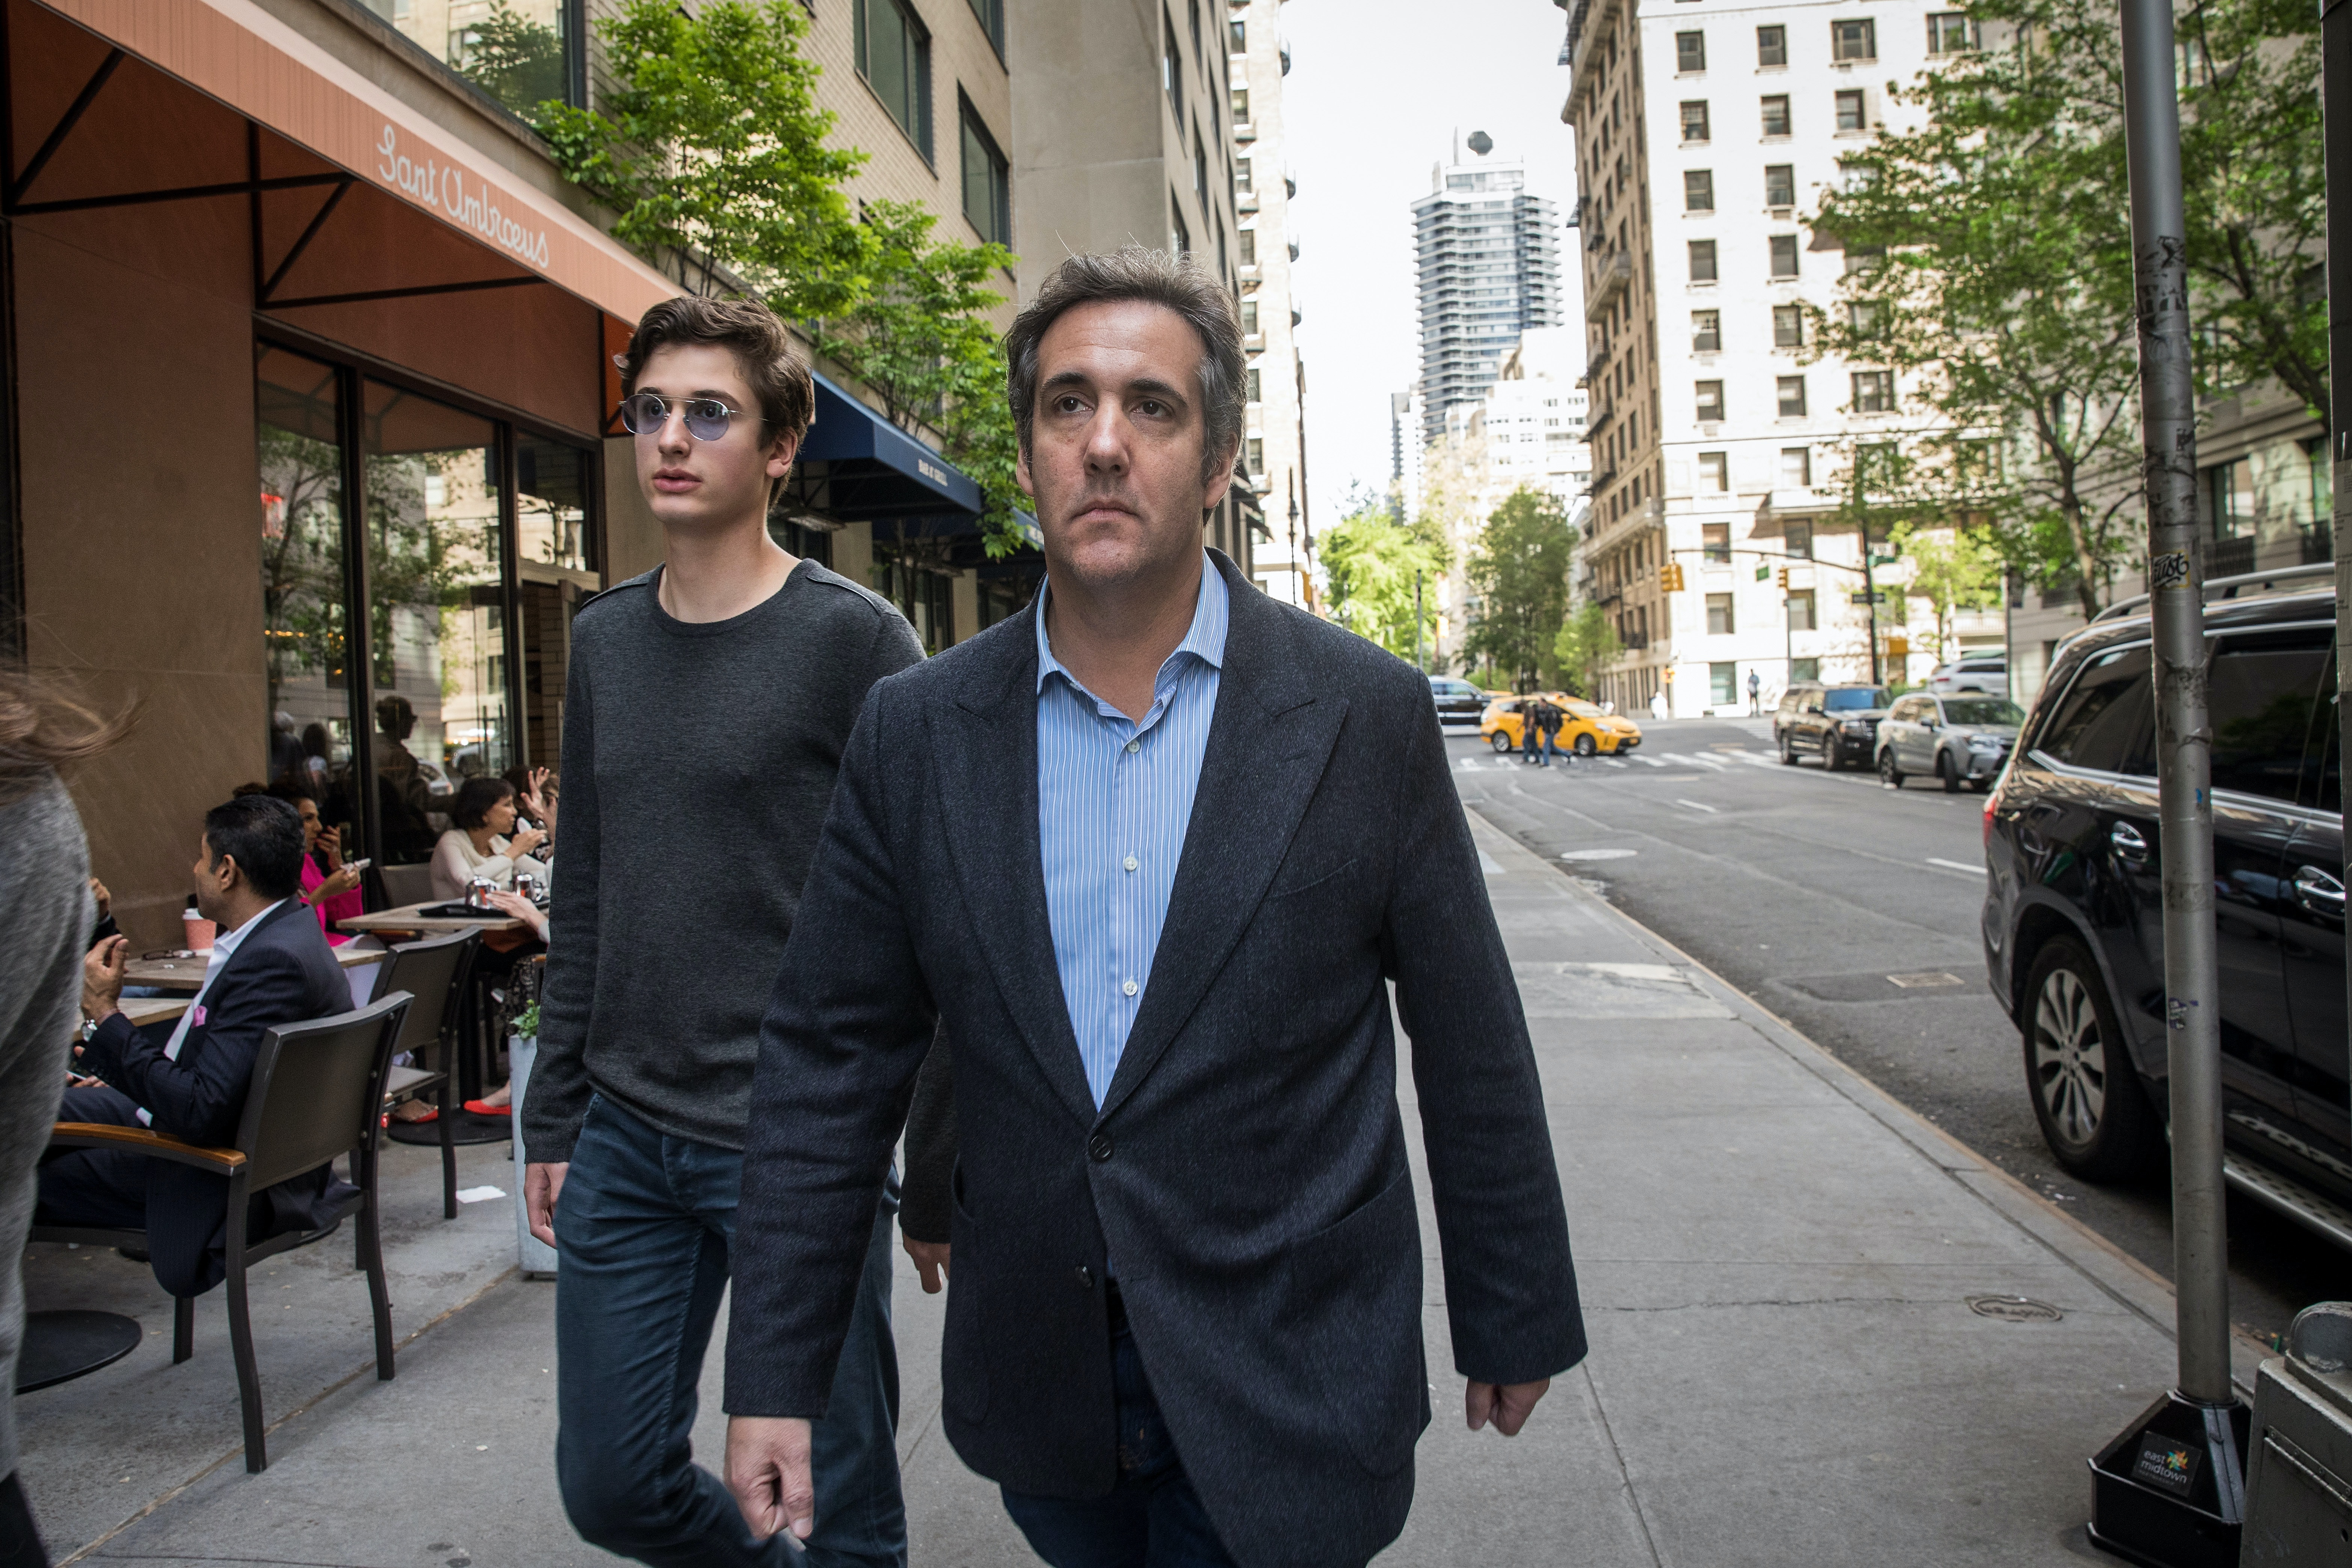 Who Is Michael Cohen's Wife? Laura's Name Has Popped Up In